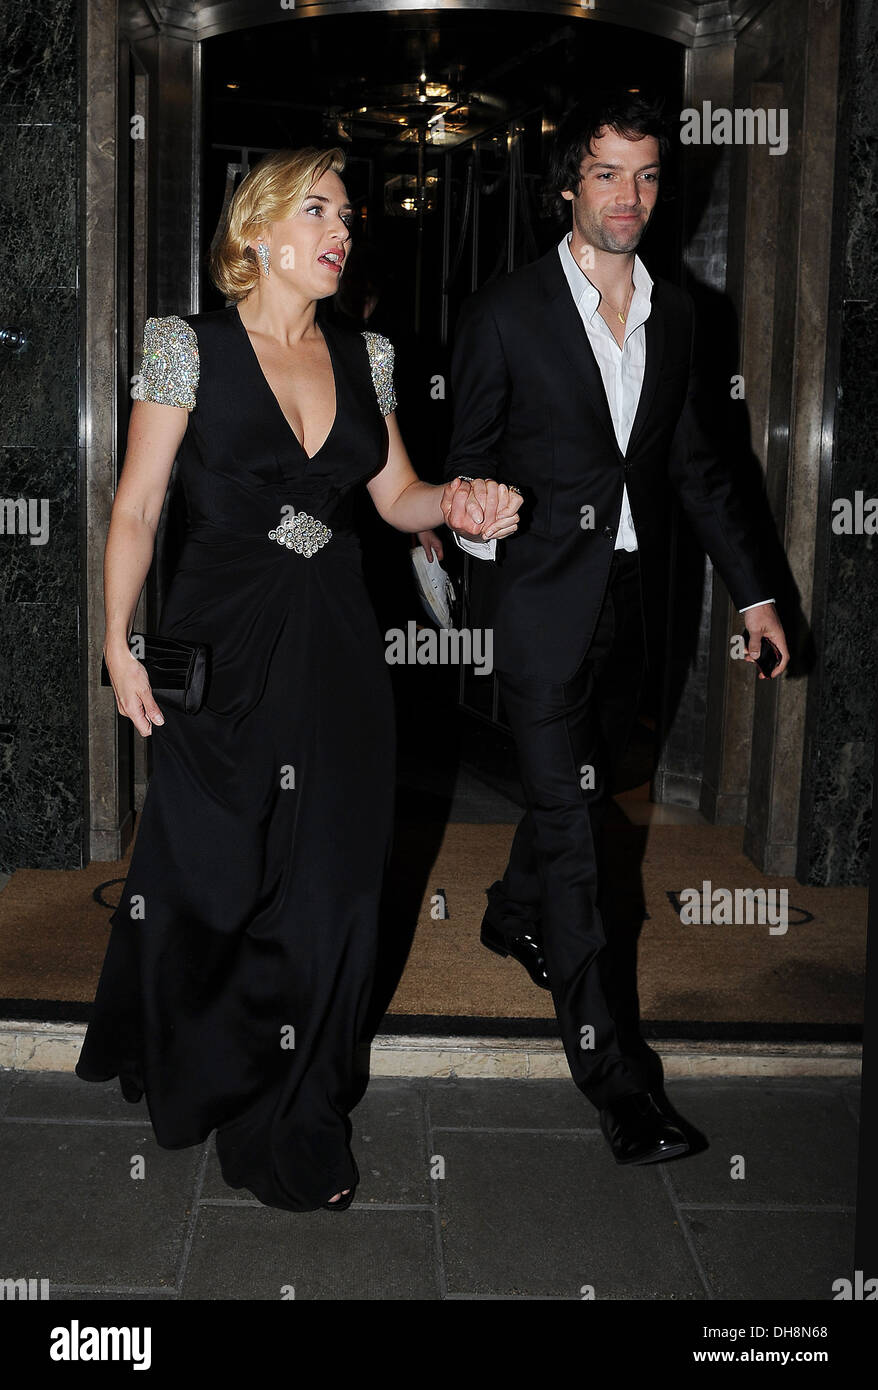 Kate Winslet with with boyfriend Ned Rocknroll leaves Claridge's Hotel wearing a glistening Jenny Packham black gown London - Stock Image